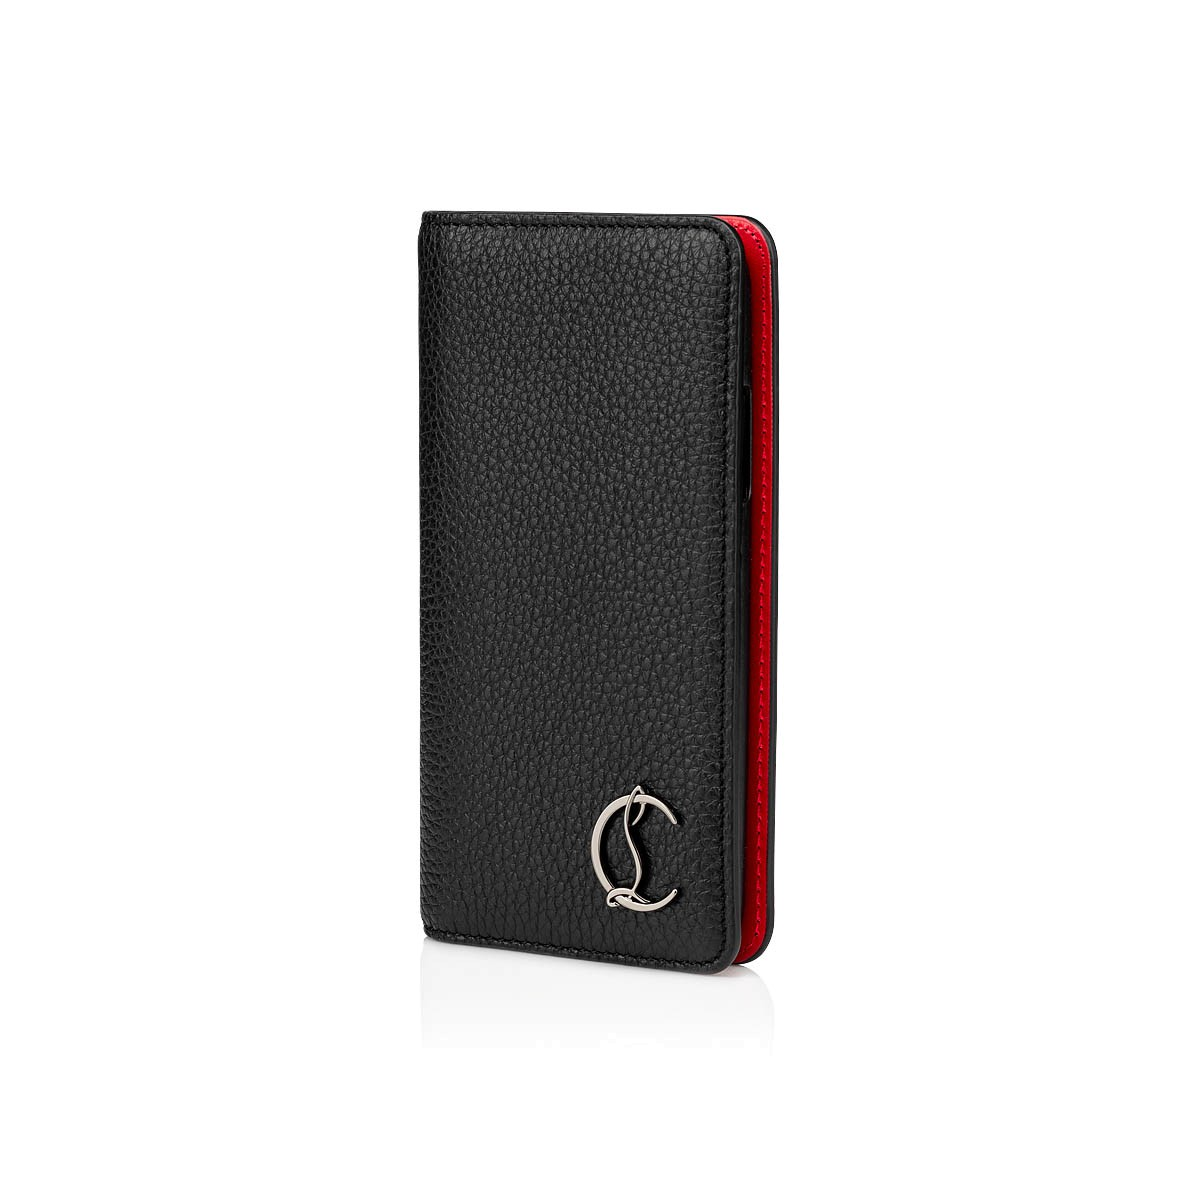 Small Leather Goods - Loubiflap Case Iphone X/xs - Christian Louboutin